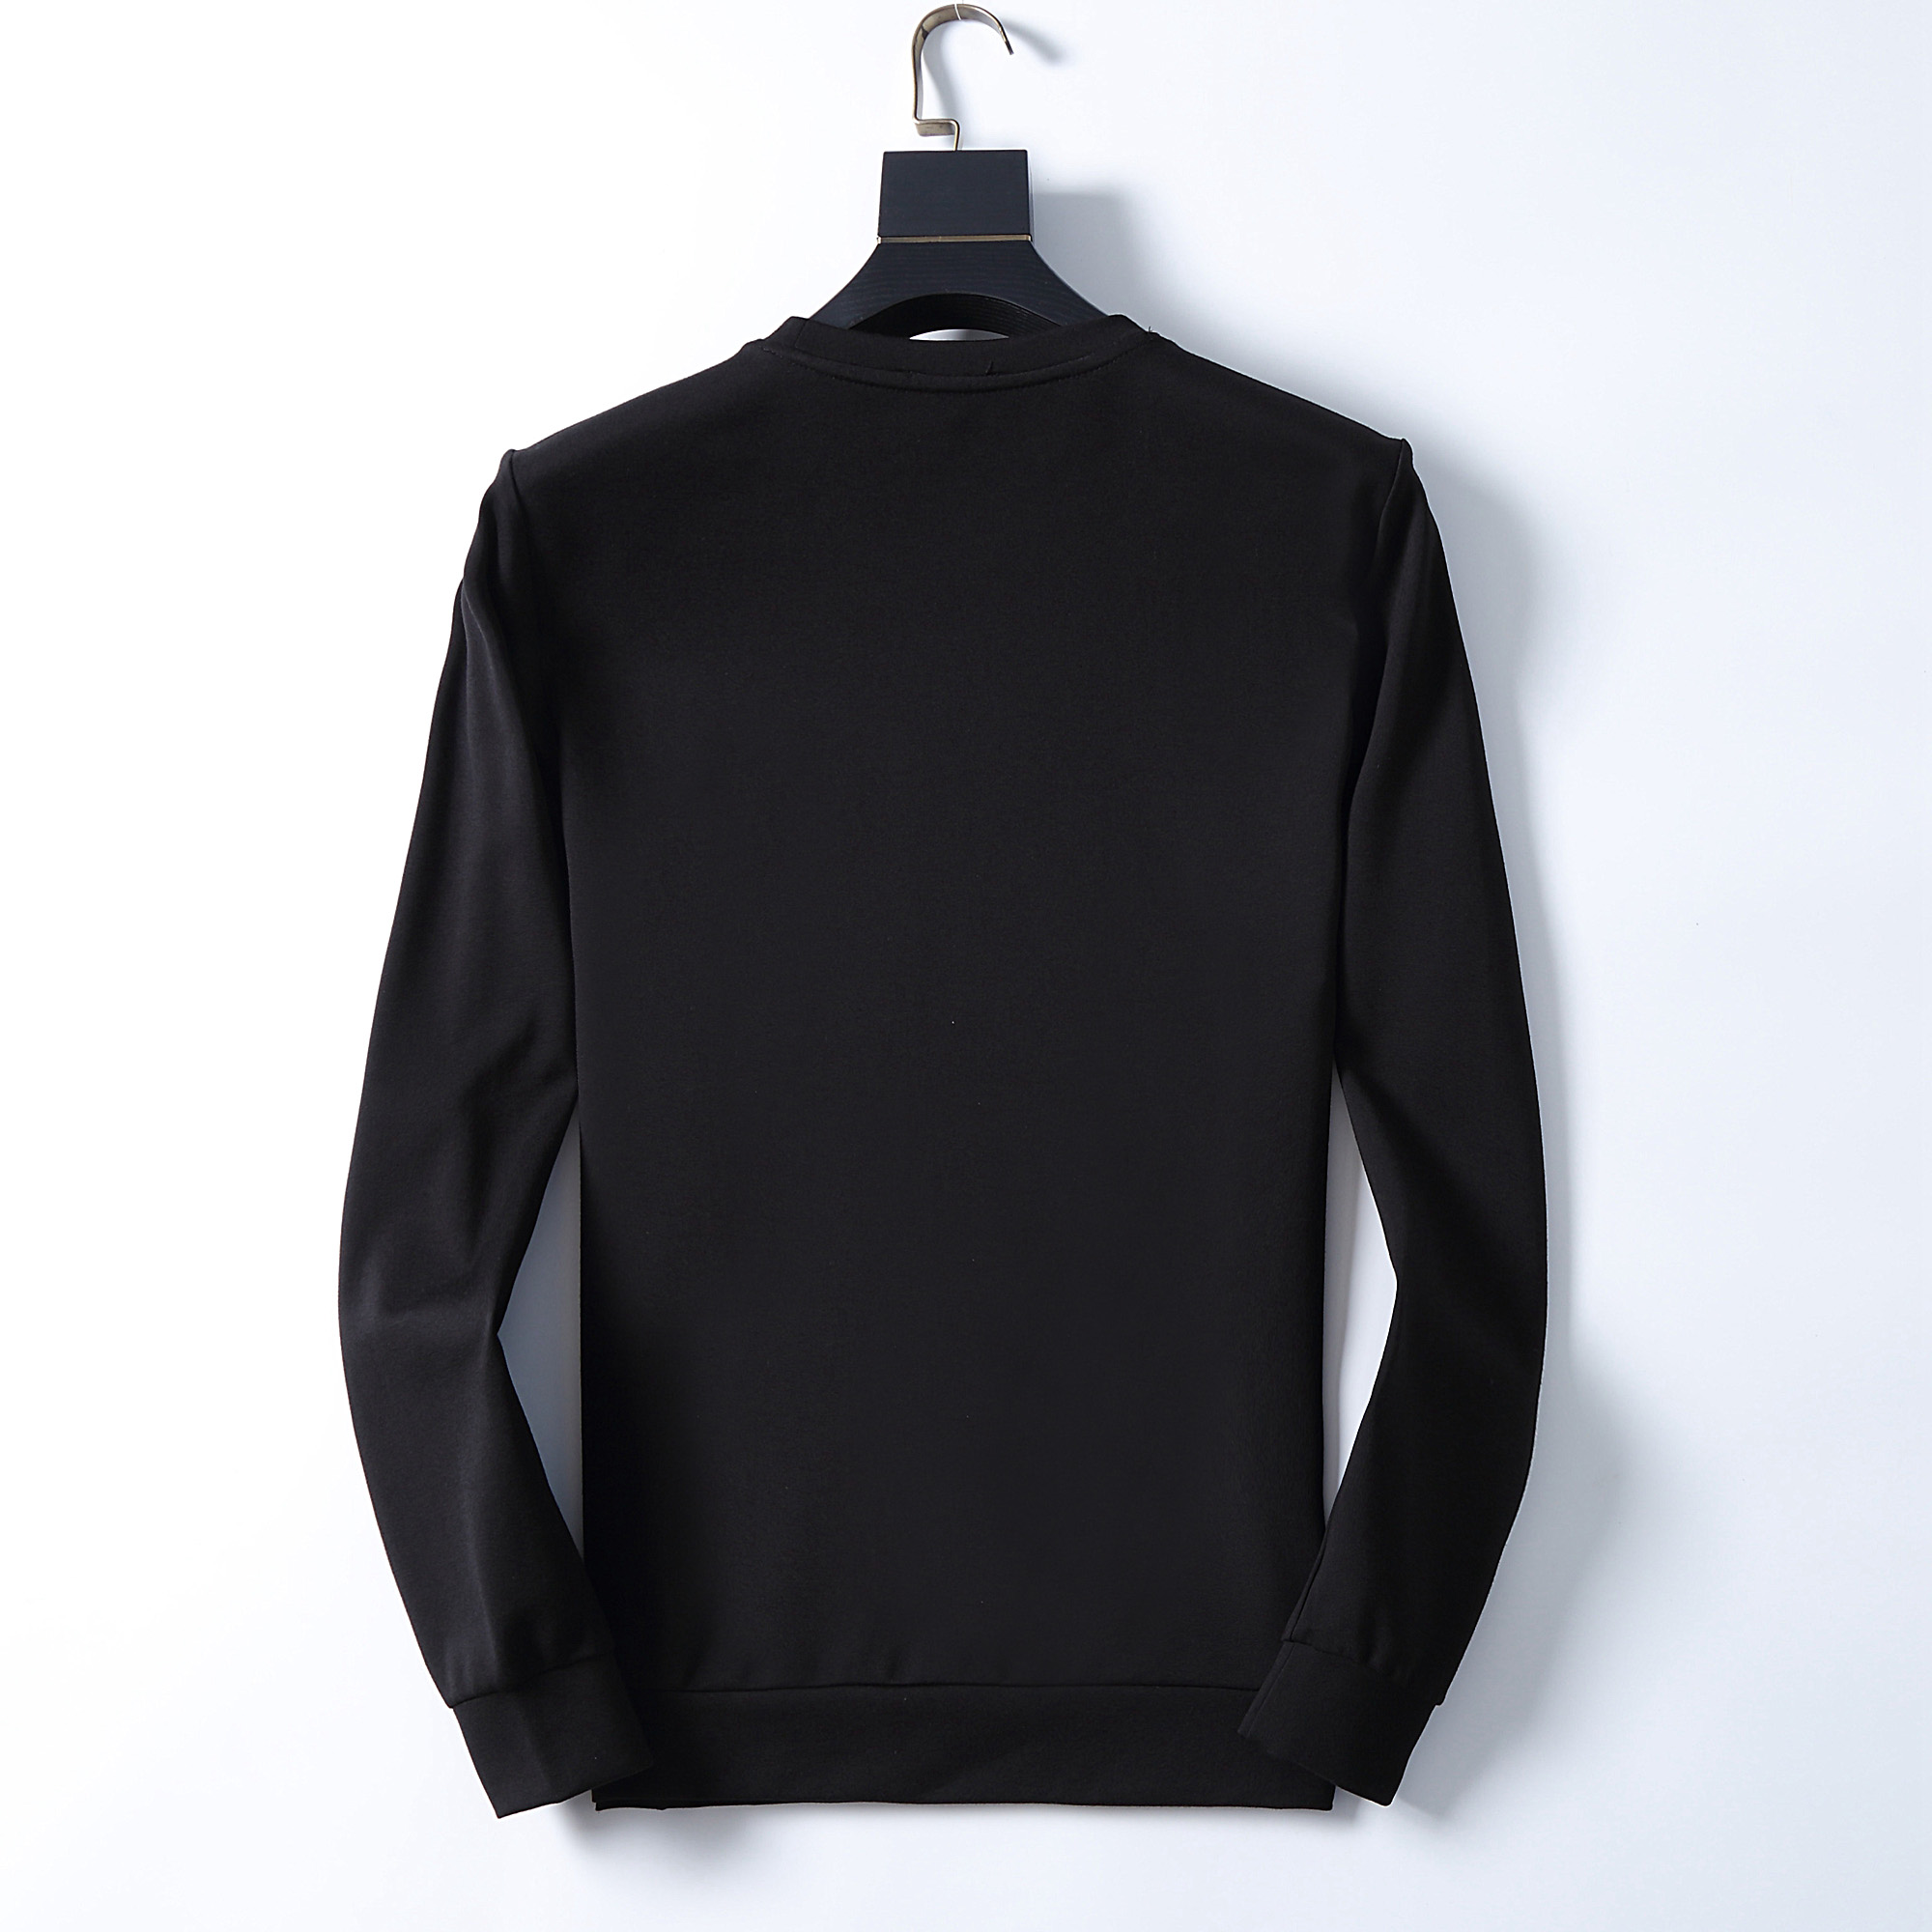 2020 Cheap Fendi Hoodies For Men # 228485, cheap Fendi Hoodies, only $45!